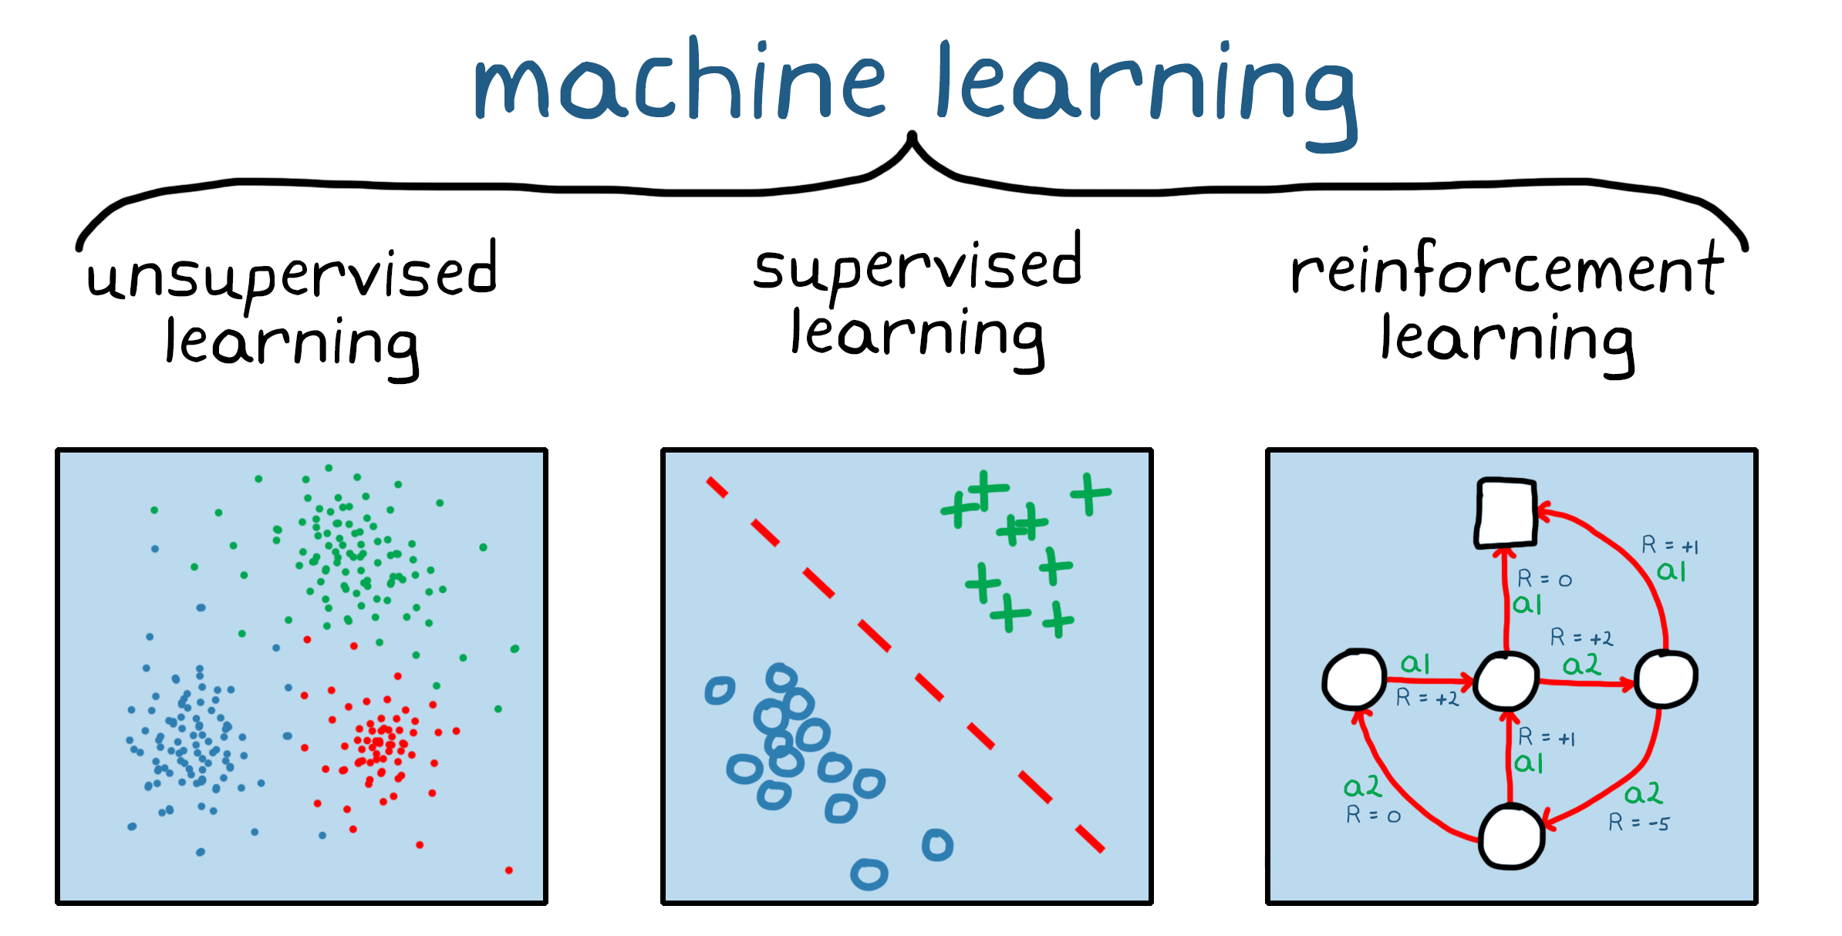 Figure 1. Three broad categories of machine learning: unsupervised learning, supervised learning and reinforcement learning